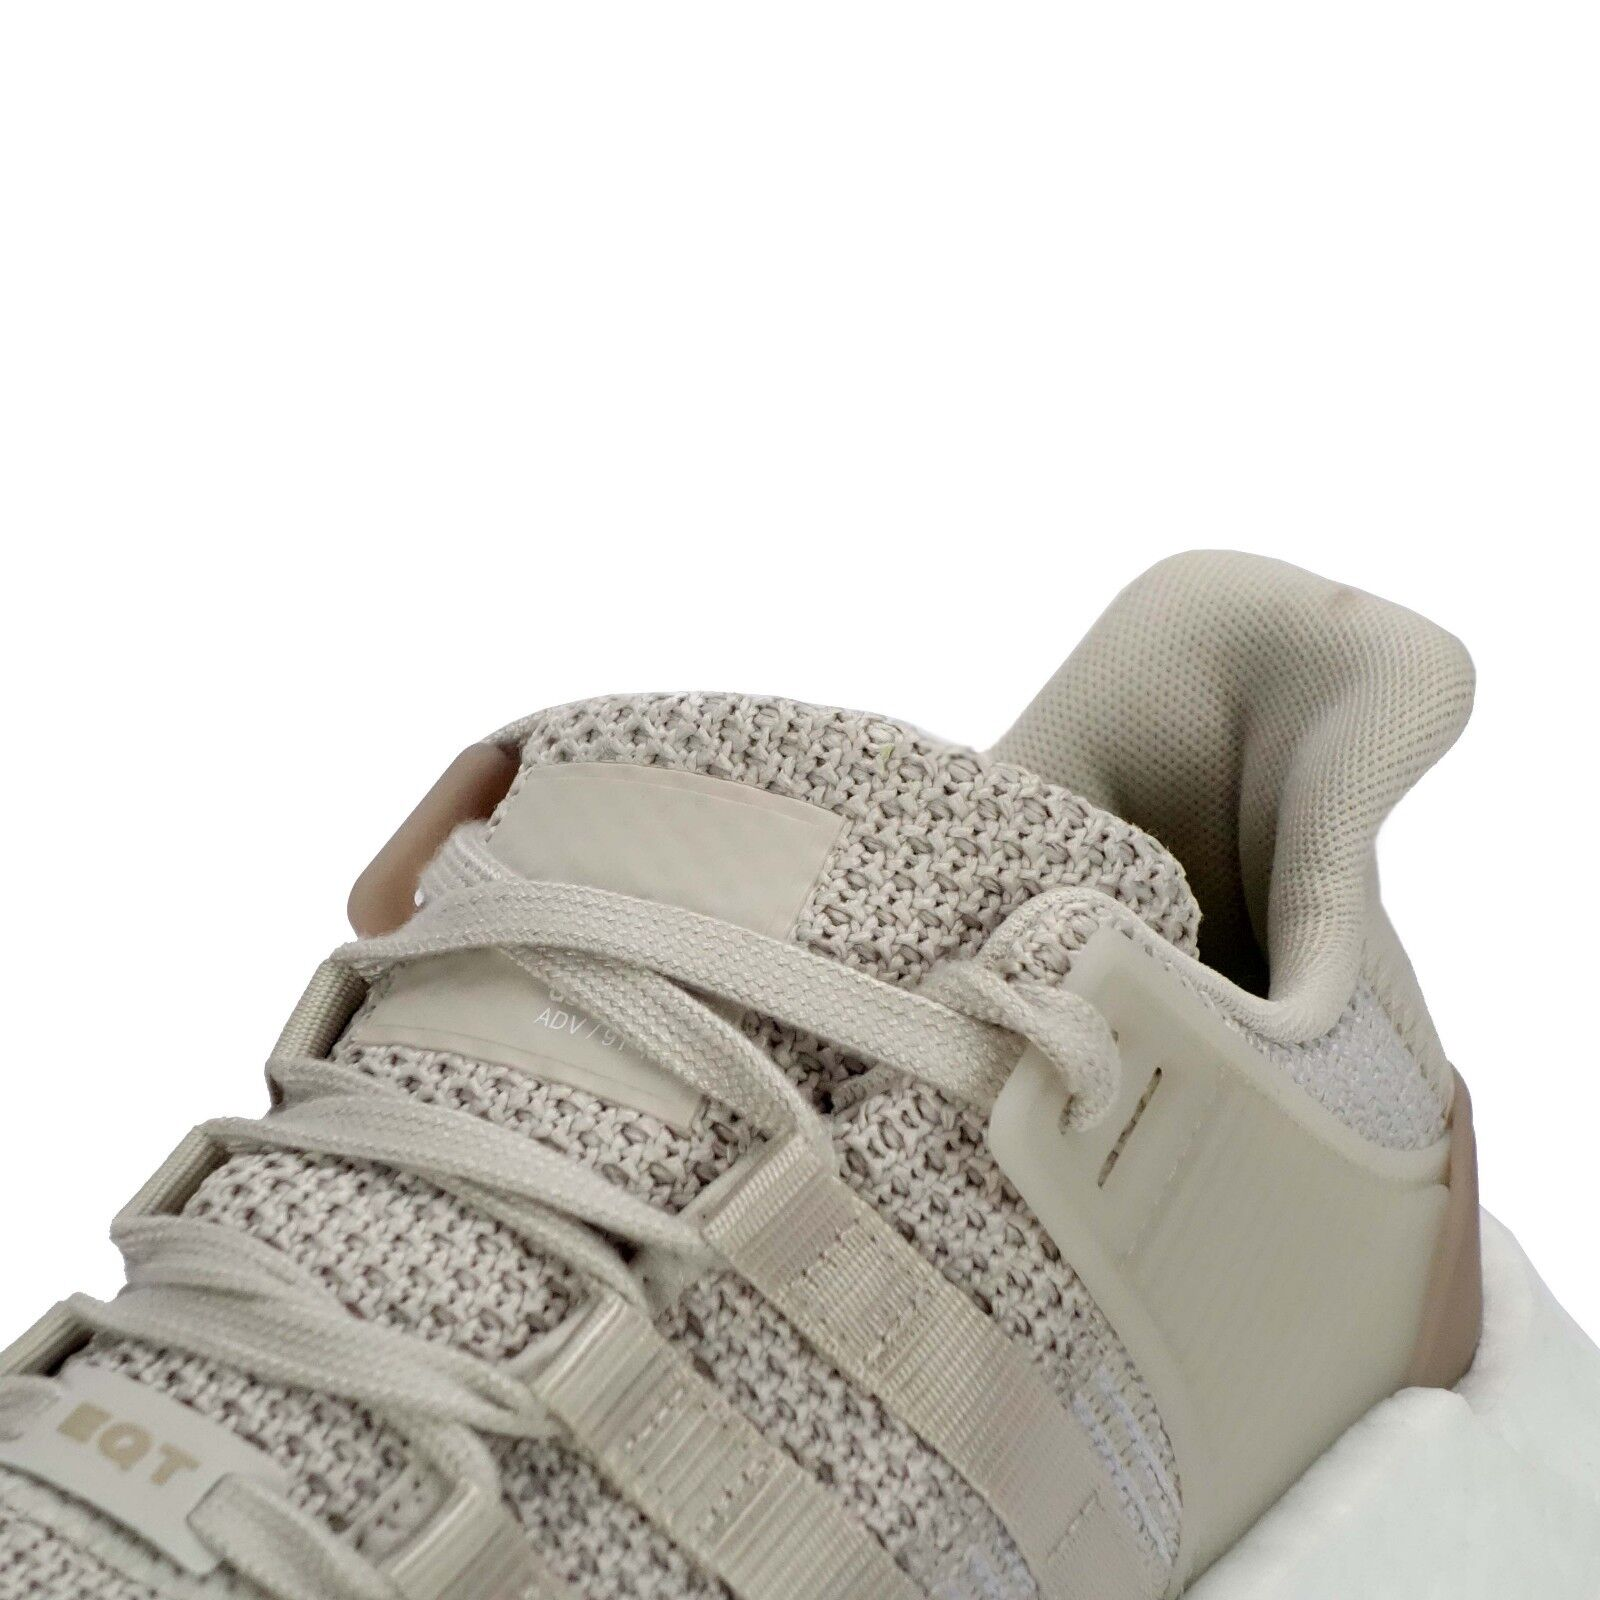 adidas homme Originals EQT Support 93/17 homme adidas chaussures in Brown/Brown 1ba0ca